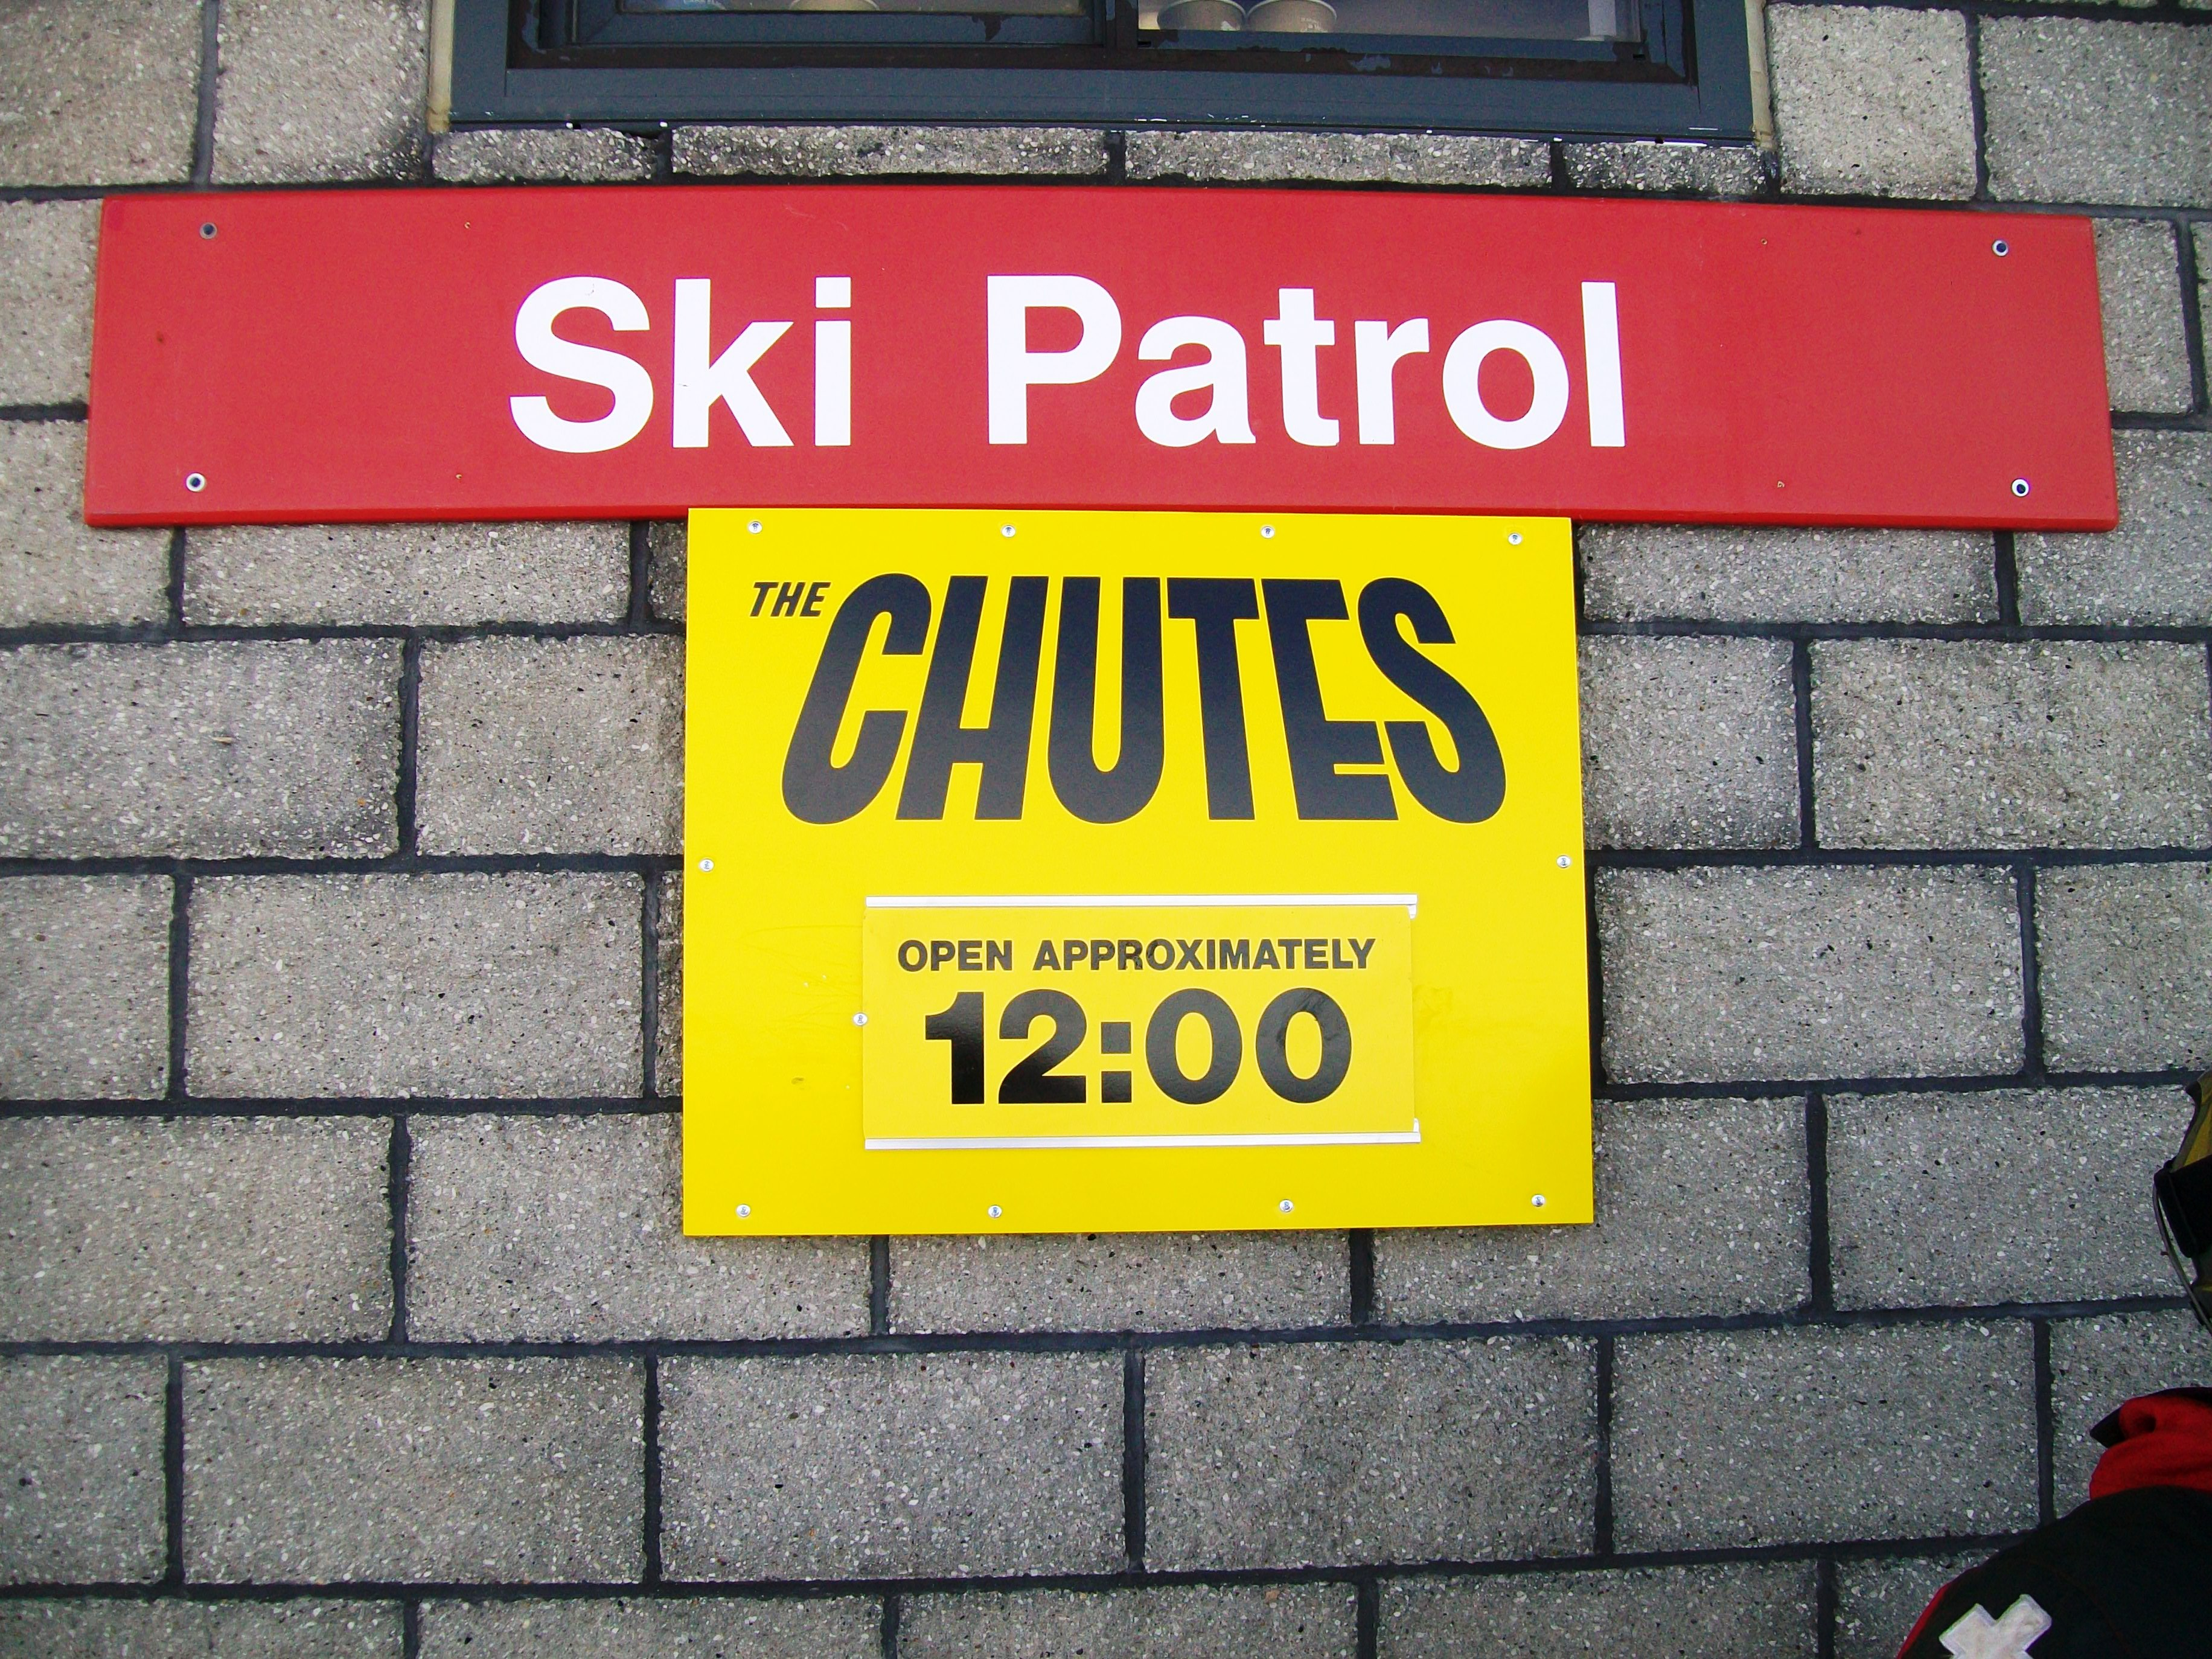 Time Information on Ski Trail Sign